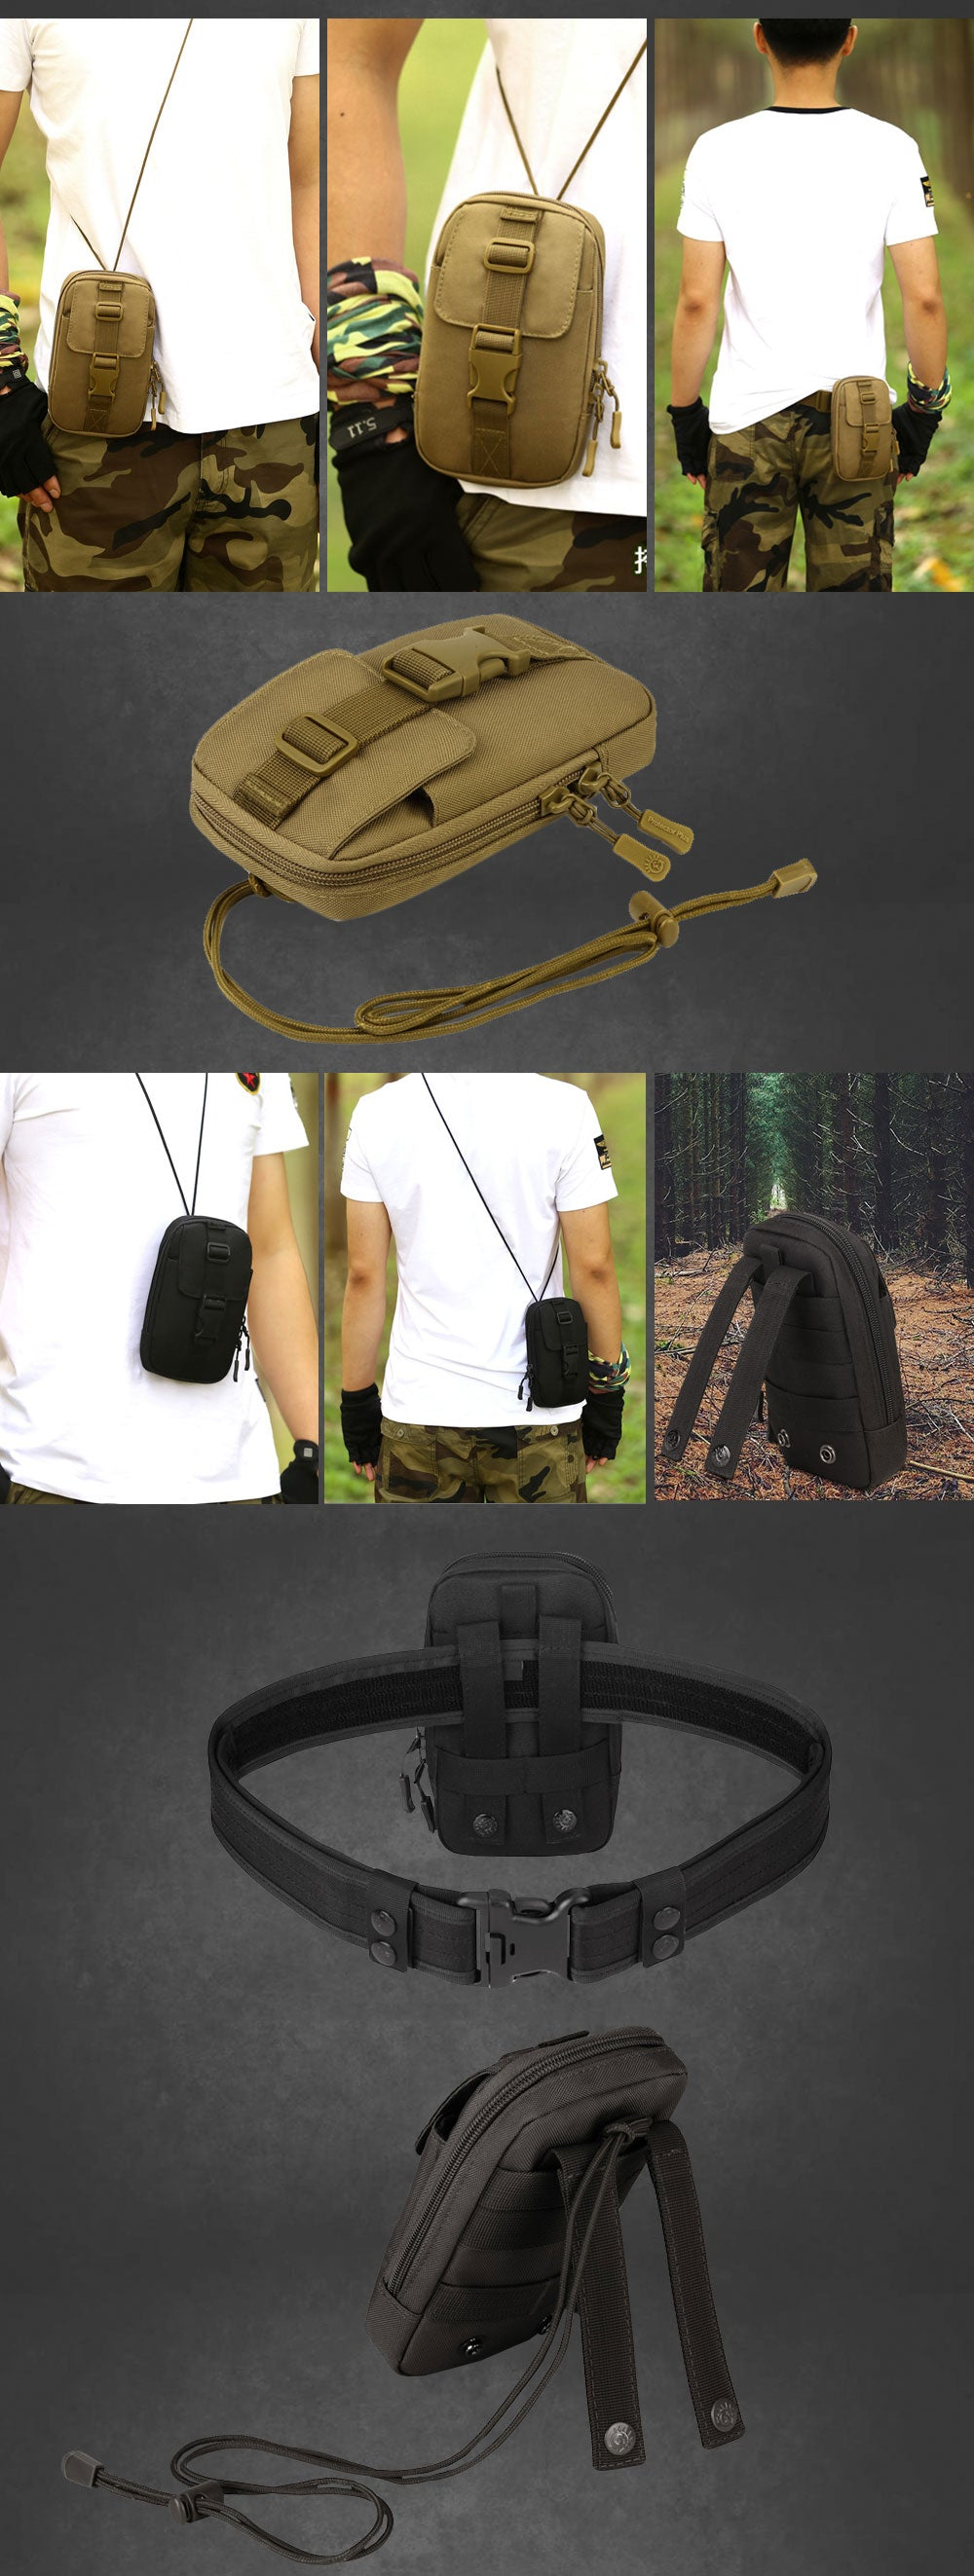 Tactical MOLLE Accessory Bag Waist Pack Travel Pouch Shoulder Bag Tactical Durable Travel Hiking Army MOLLE Pouch - 7 Colors